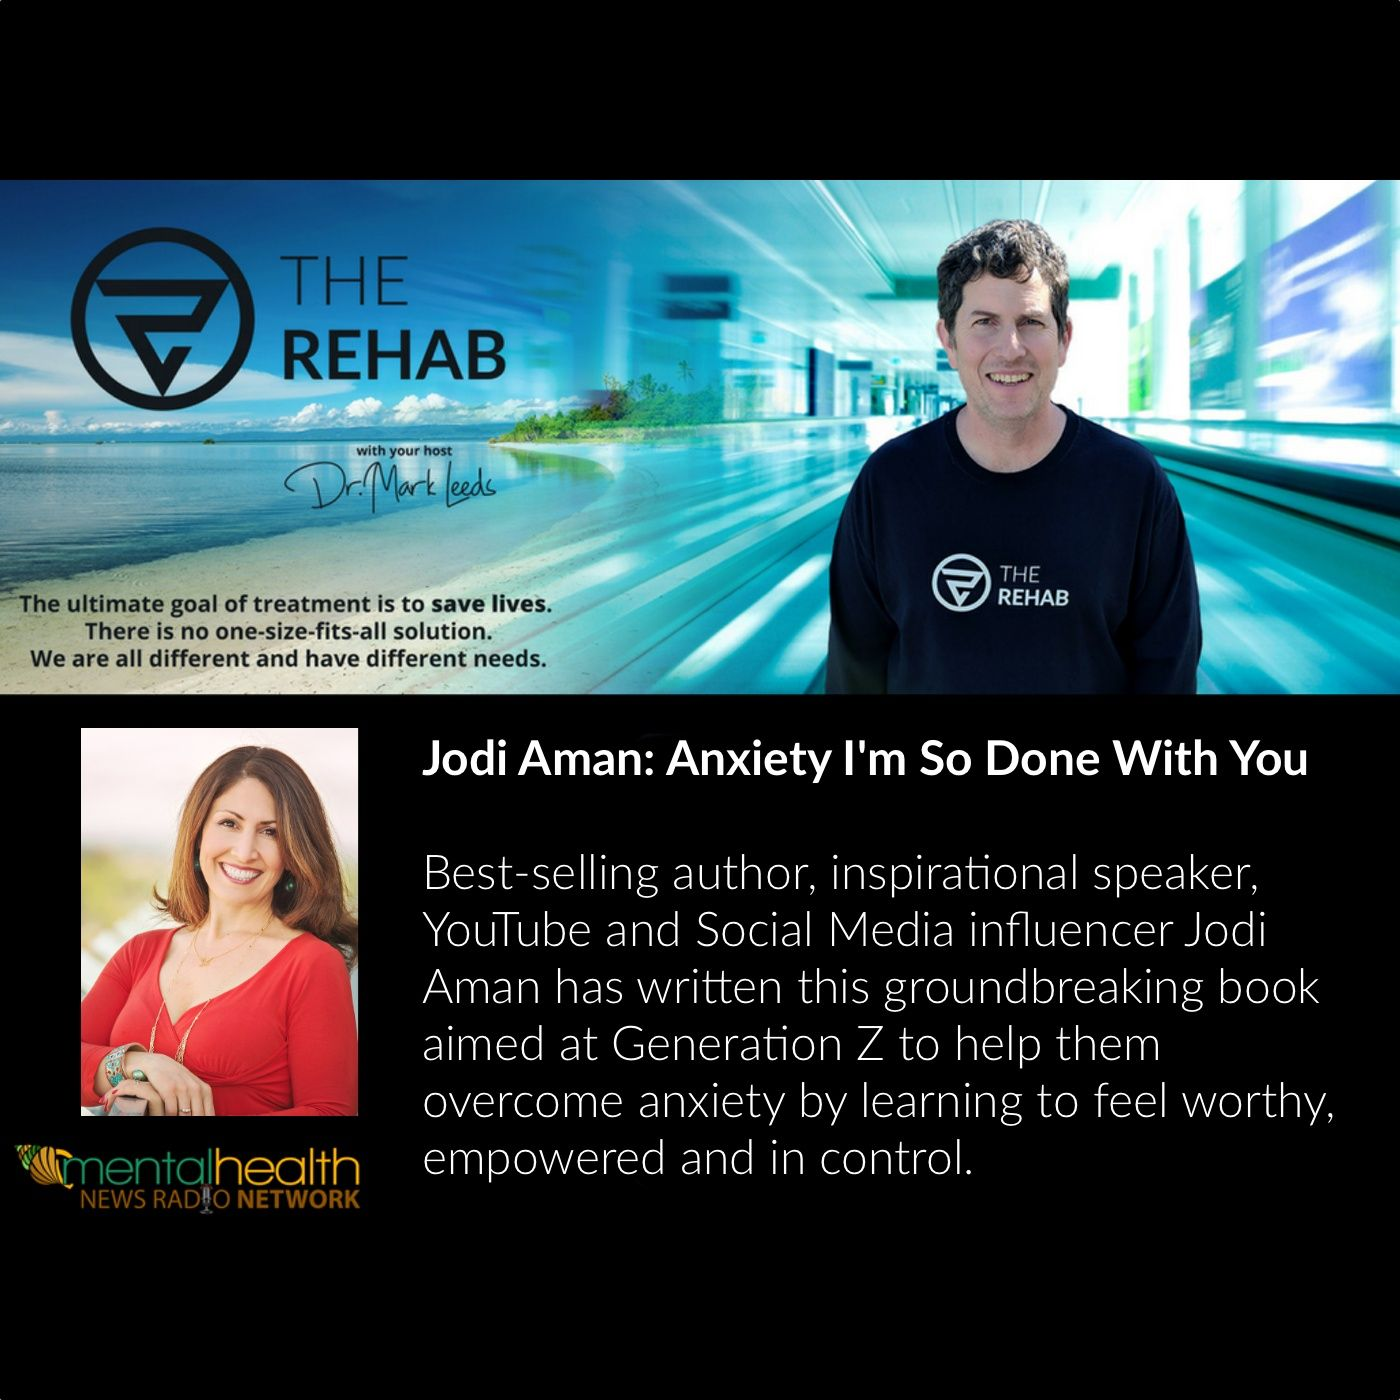 Jodi Aman: Anxiety I'm So Done With You